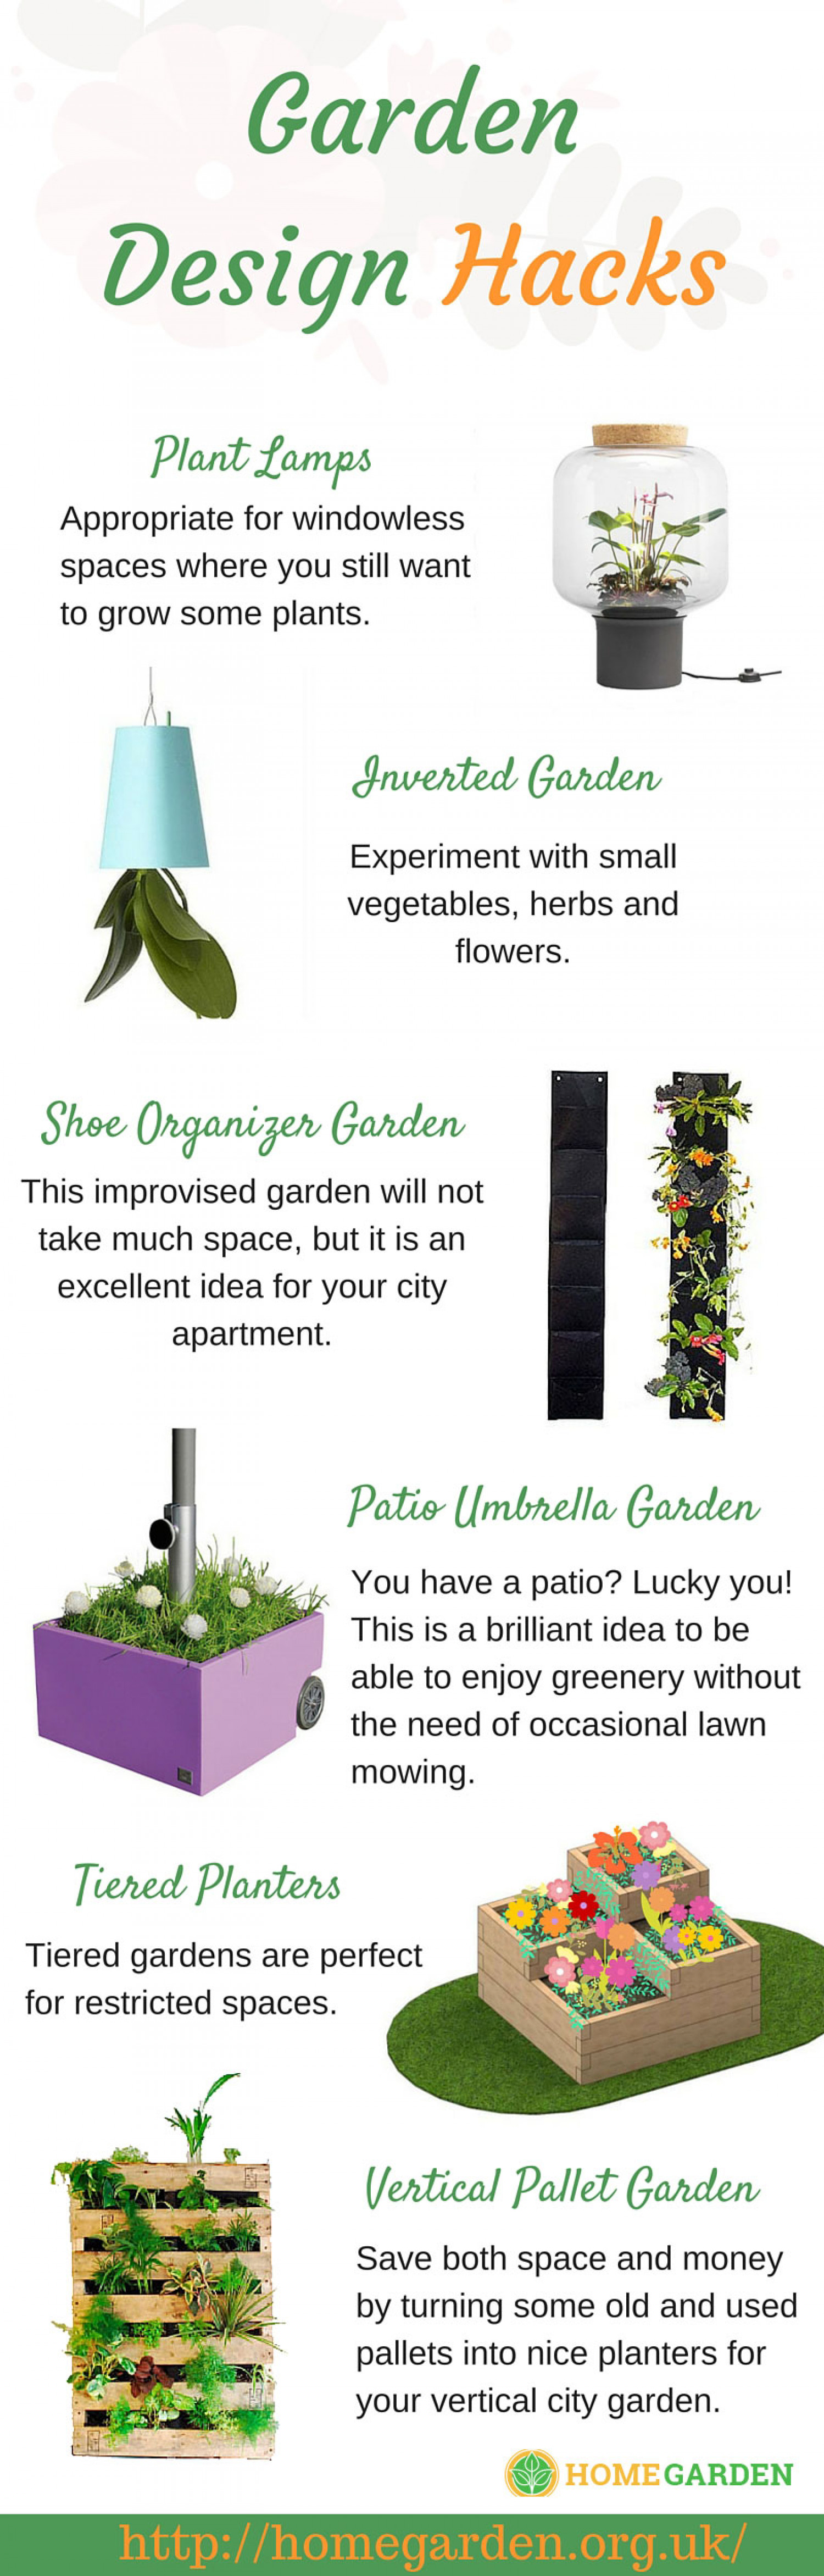 Garden Design Hacks Infographic